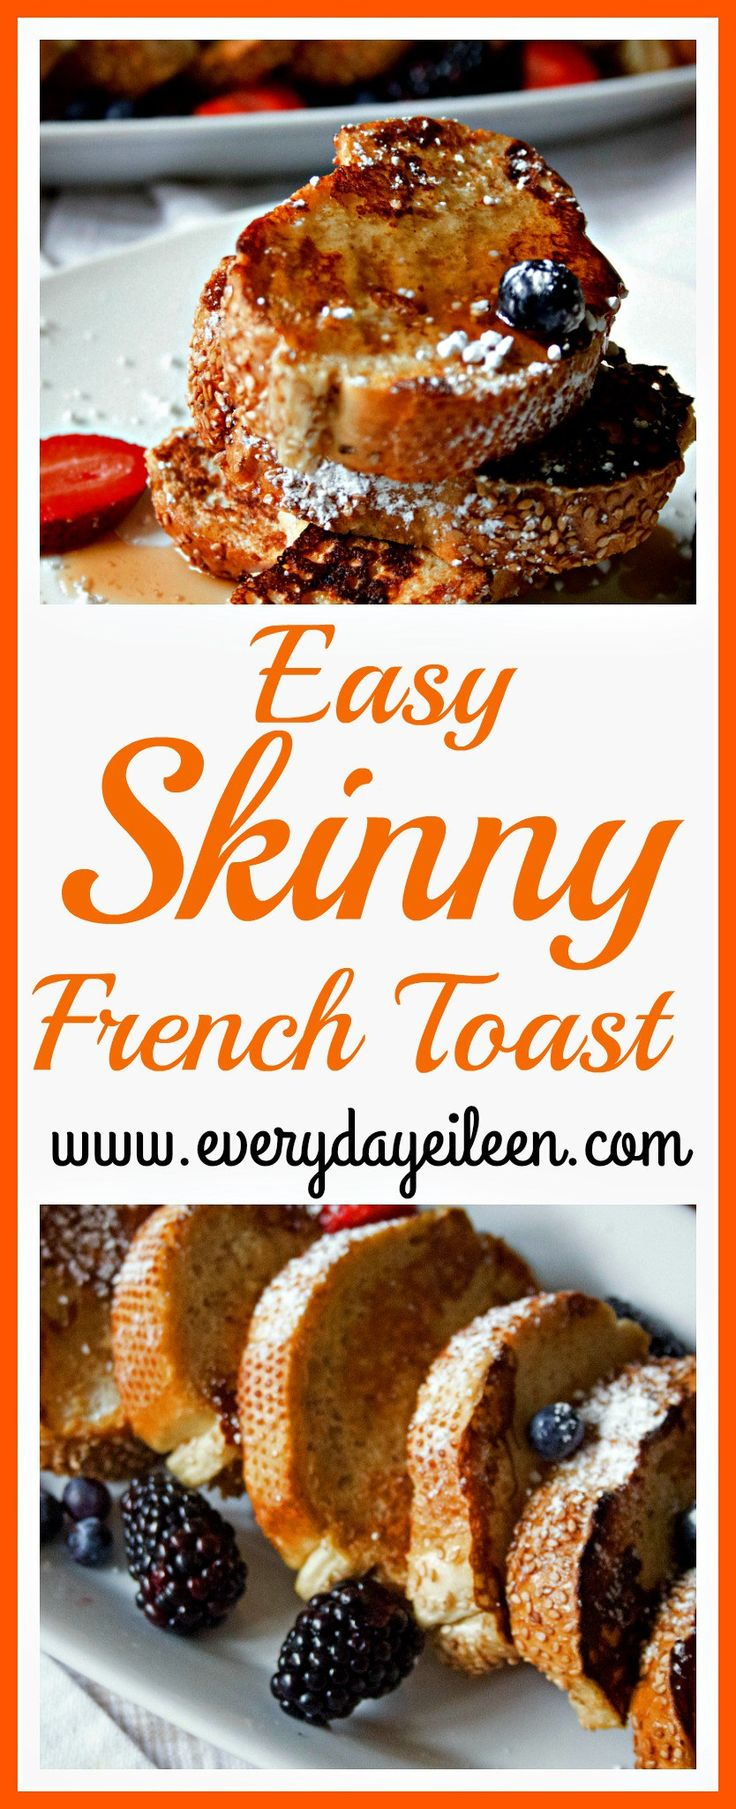 A delicious recipe for easy and skinny french toast.  Use low-fat millk, orange juice, vanilla and egg whites keeps calories down and the toast is full of  flavor. Perfect for any day! Great for a Holiday brunch. These are perfect to make ahead and they freeze really well